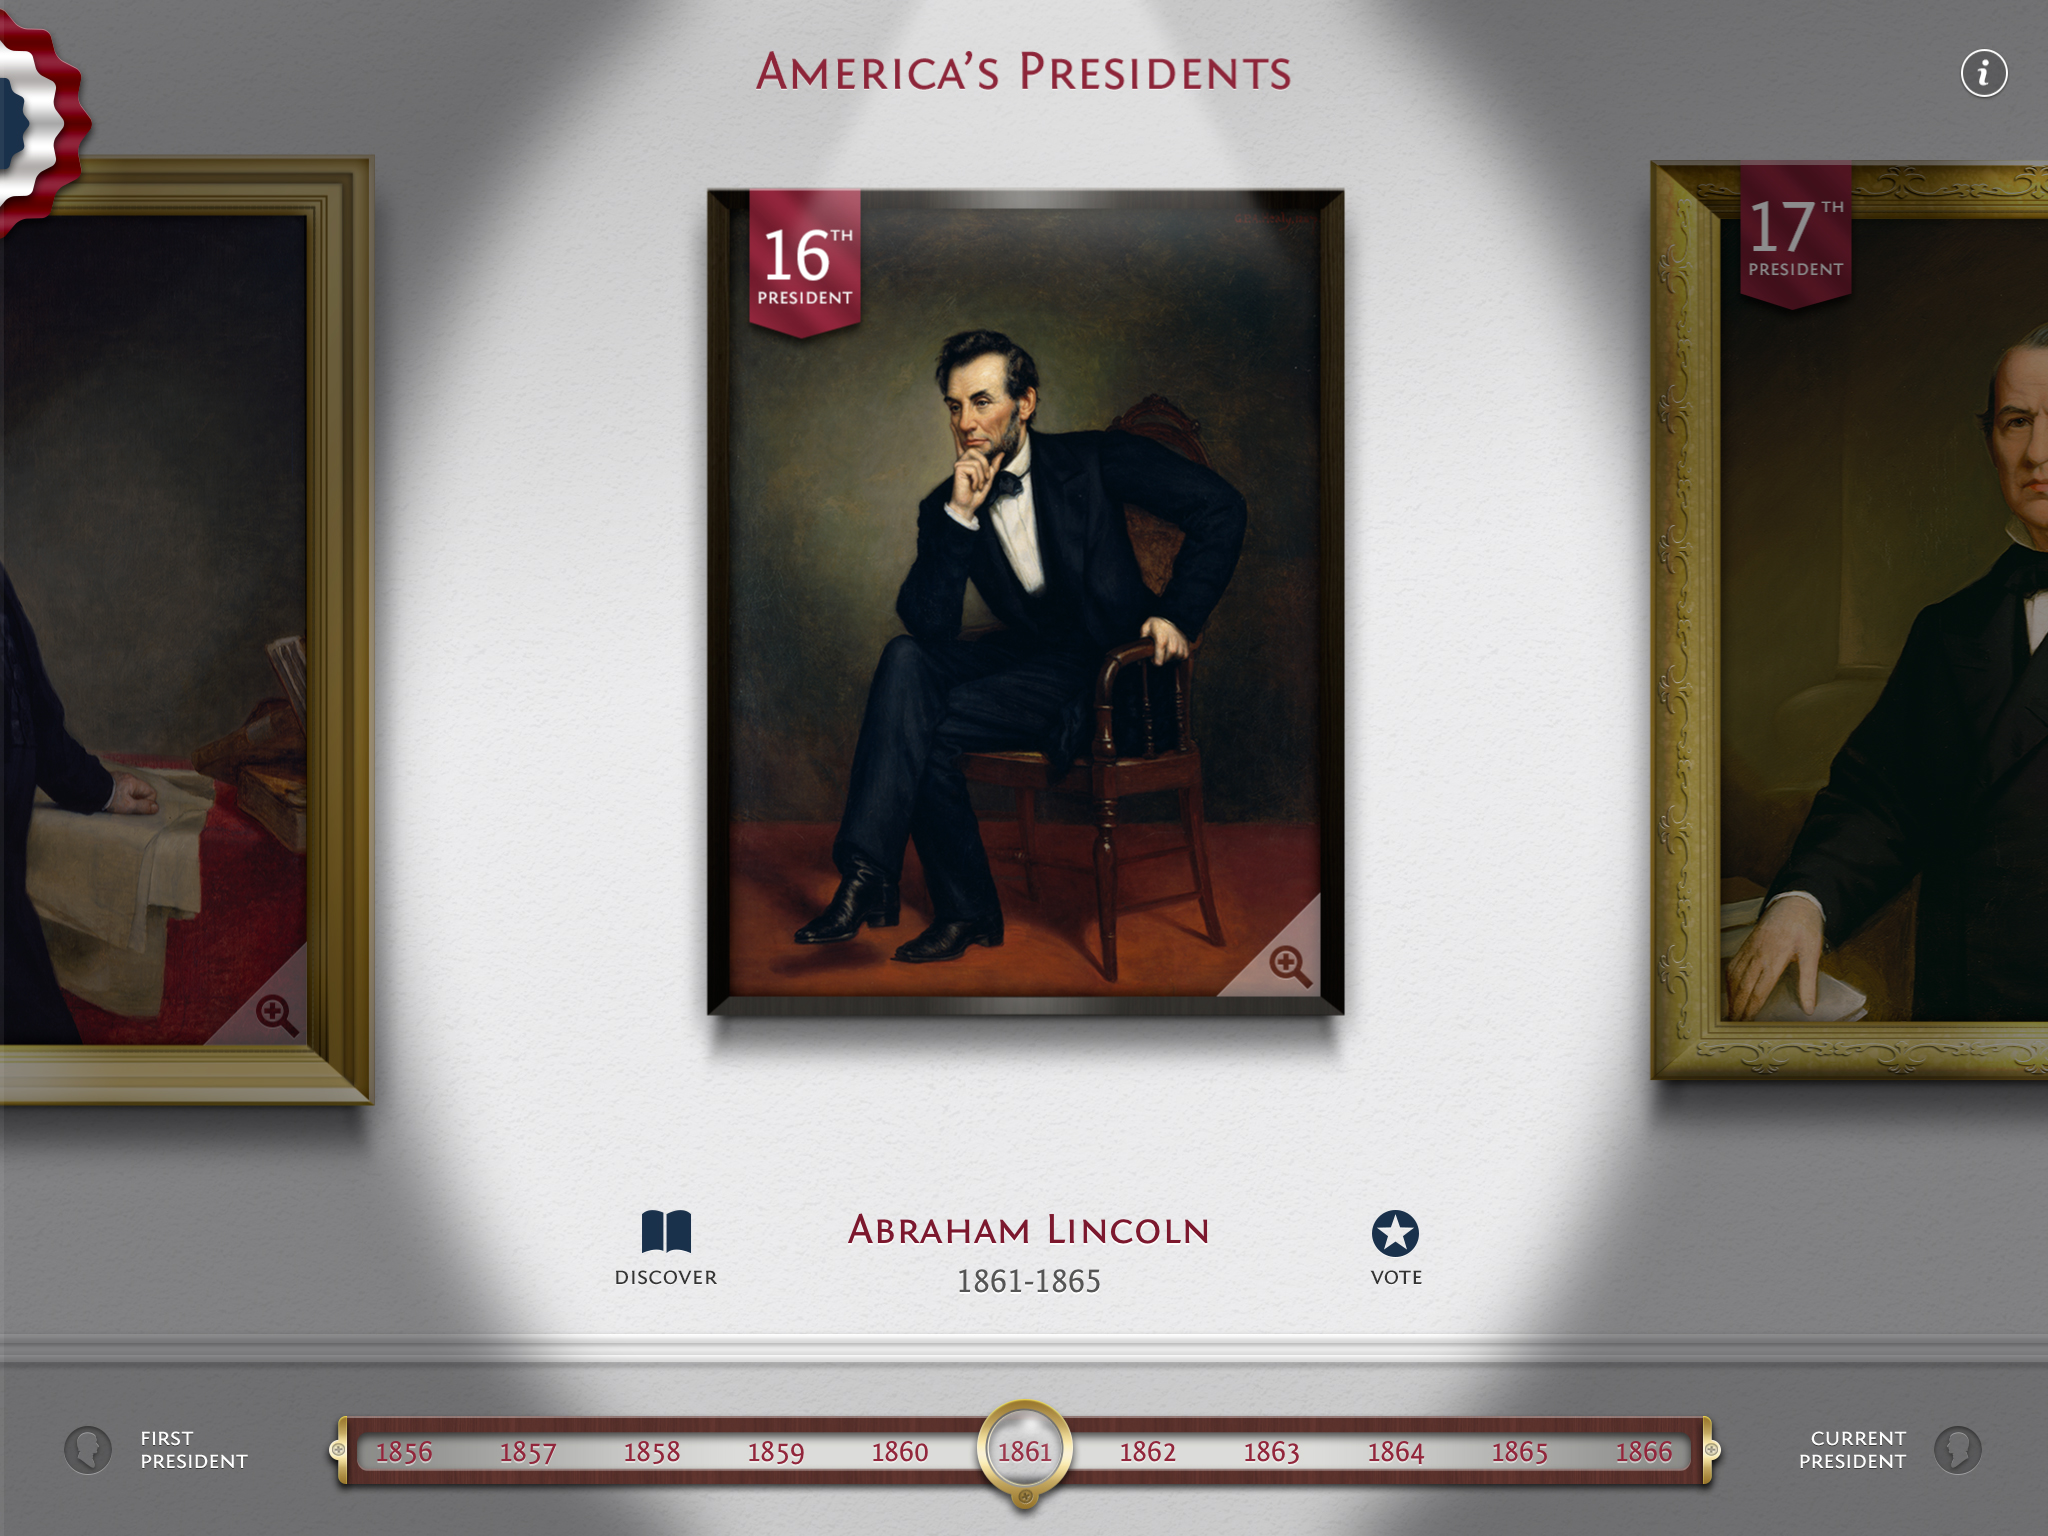 Americas-Presidents-Screenshot-006.jpg